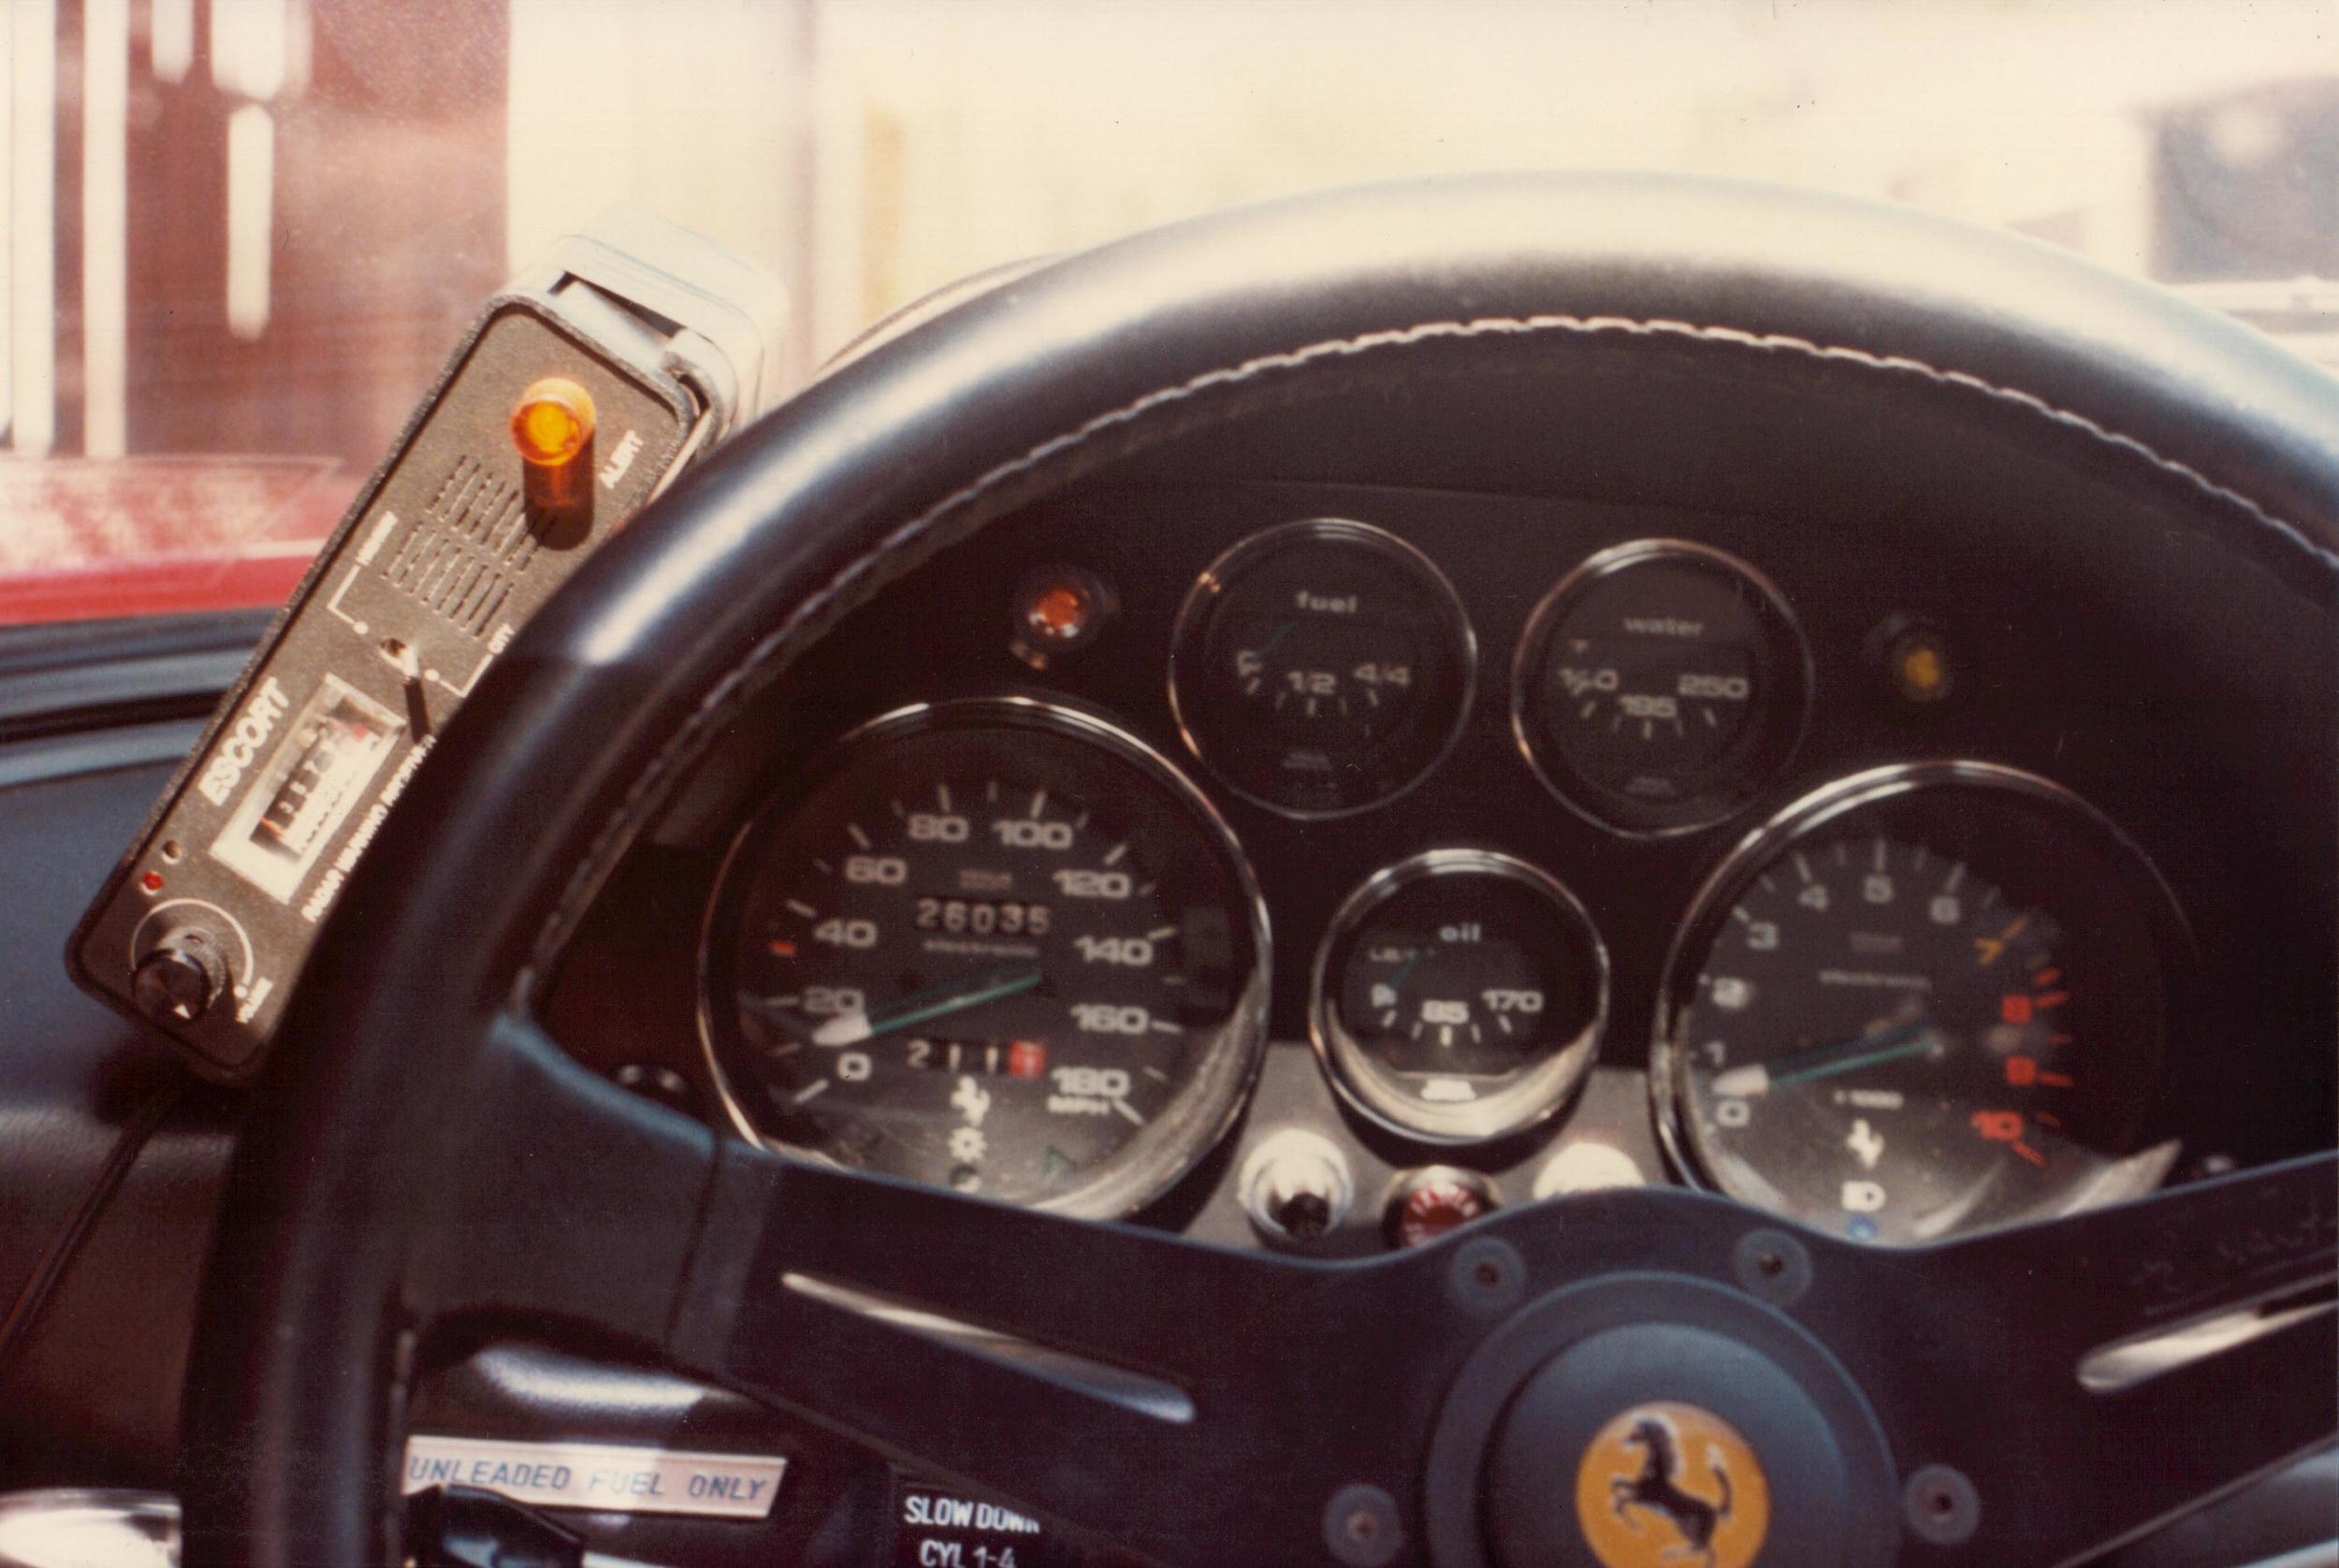 Ferrari 308 from 1983 US Express - Take note of the amazing radar detector technology of the time.